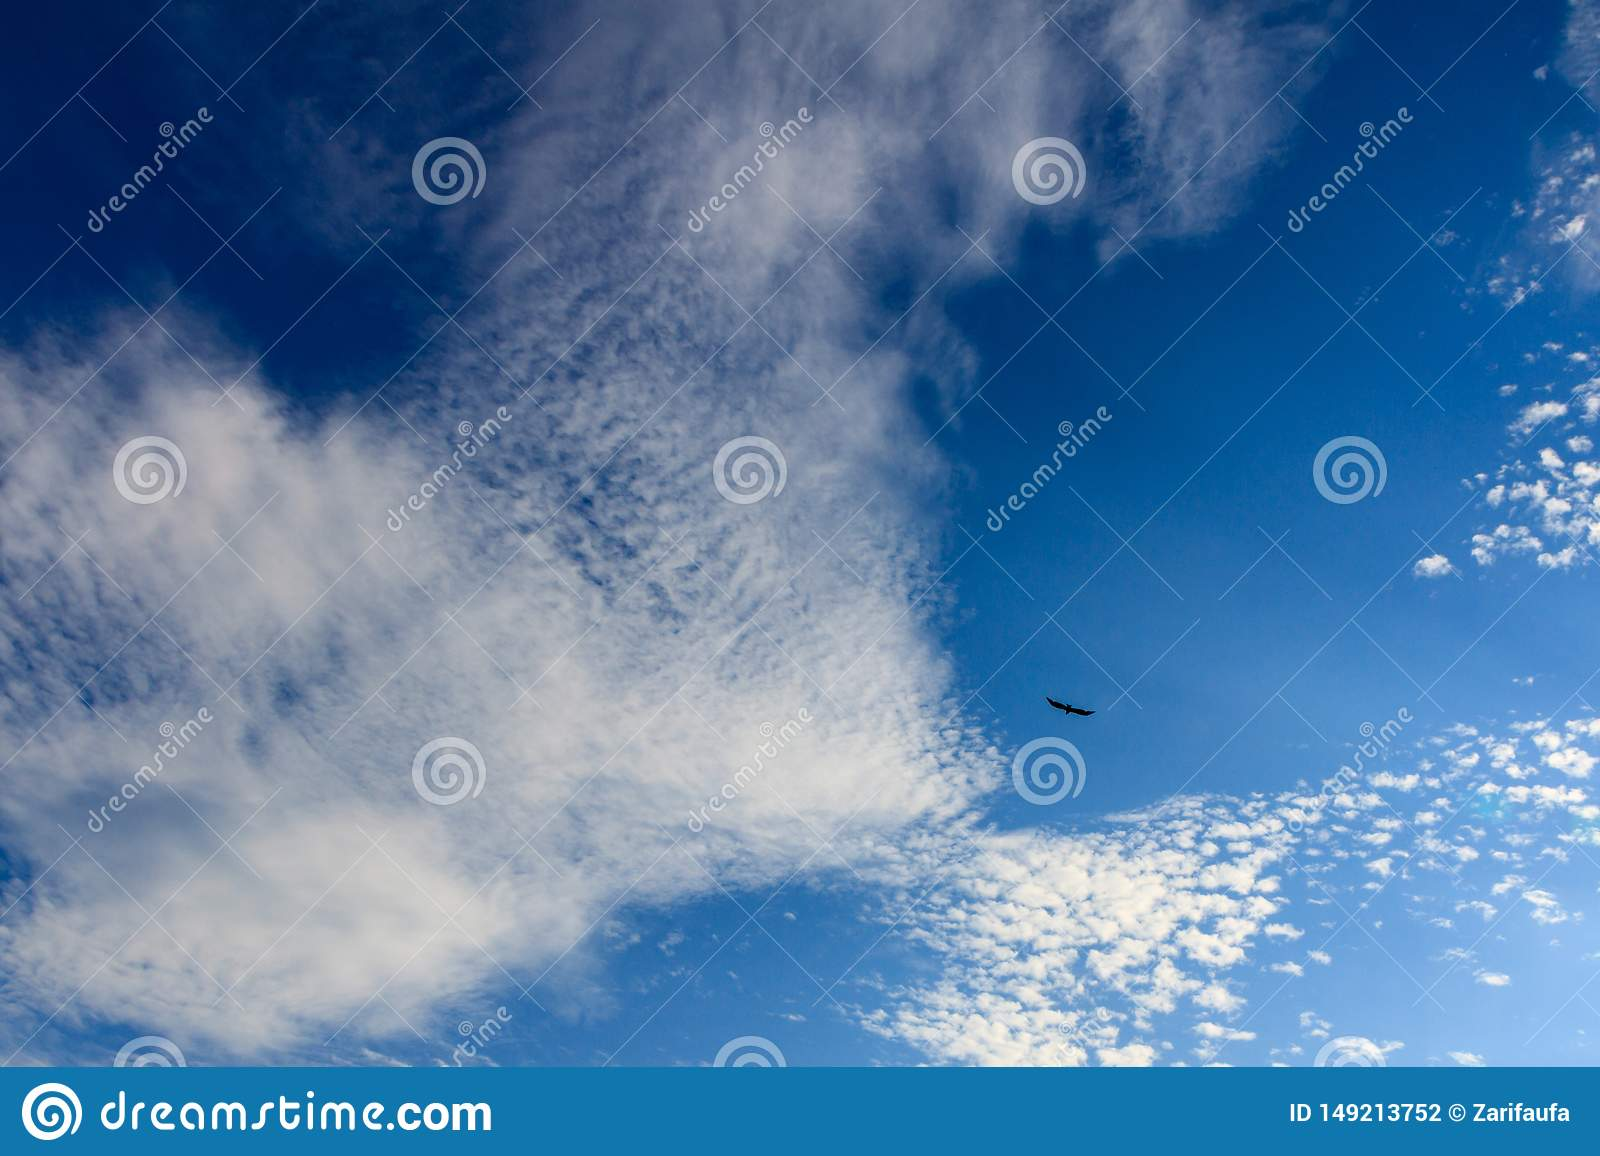 Bright and beatiful blue sky with clouds and bird on a sunny day